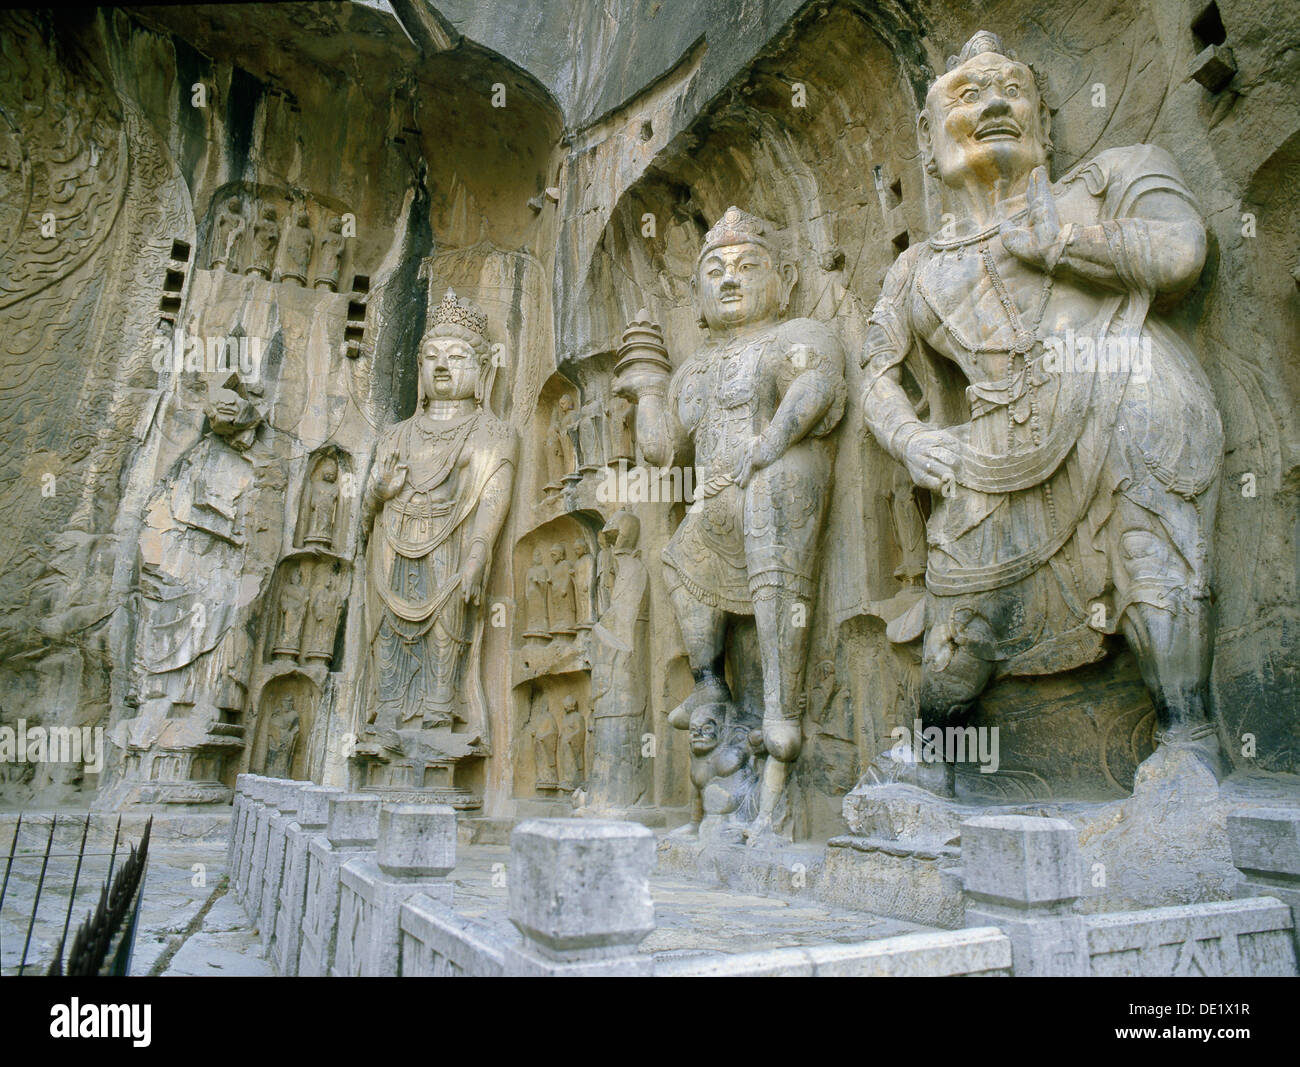 The guardian kings of Buddhism carved on the north wall of the Fengxian temple at the Longmen cave-temple complex. - Stock Image